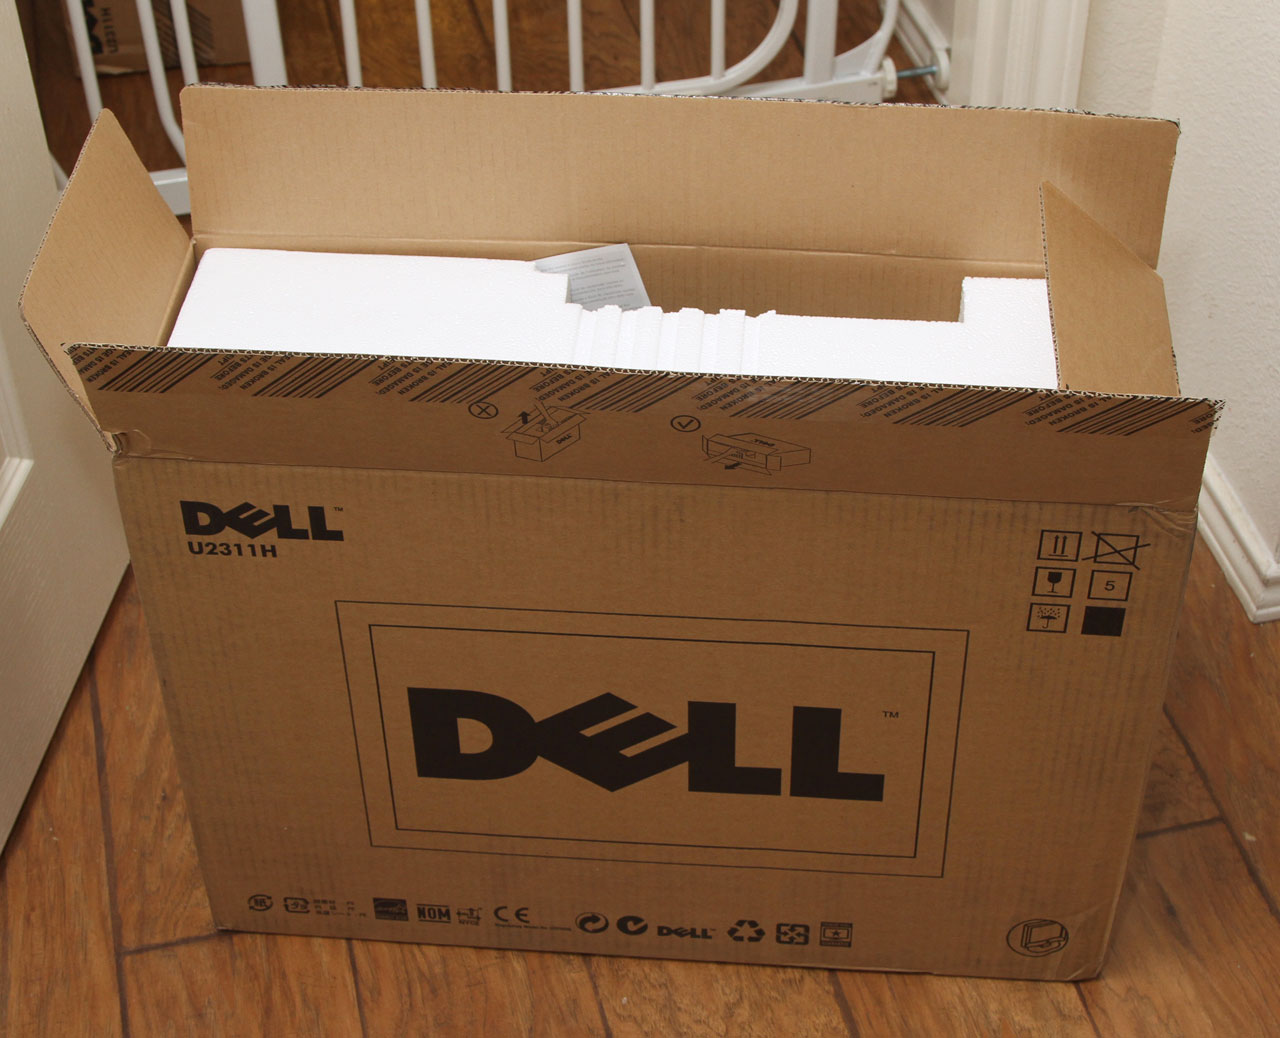 Dell U2311H LCD monitor box